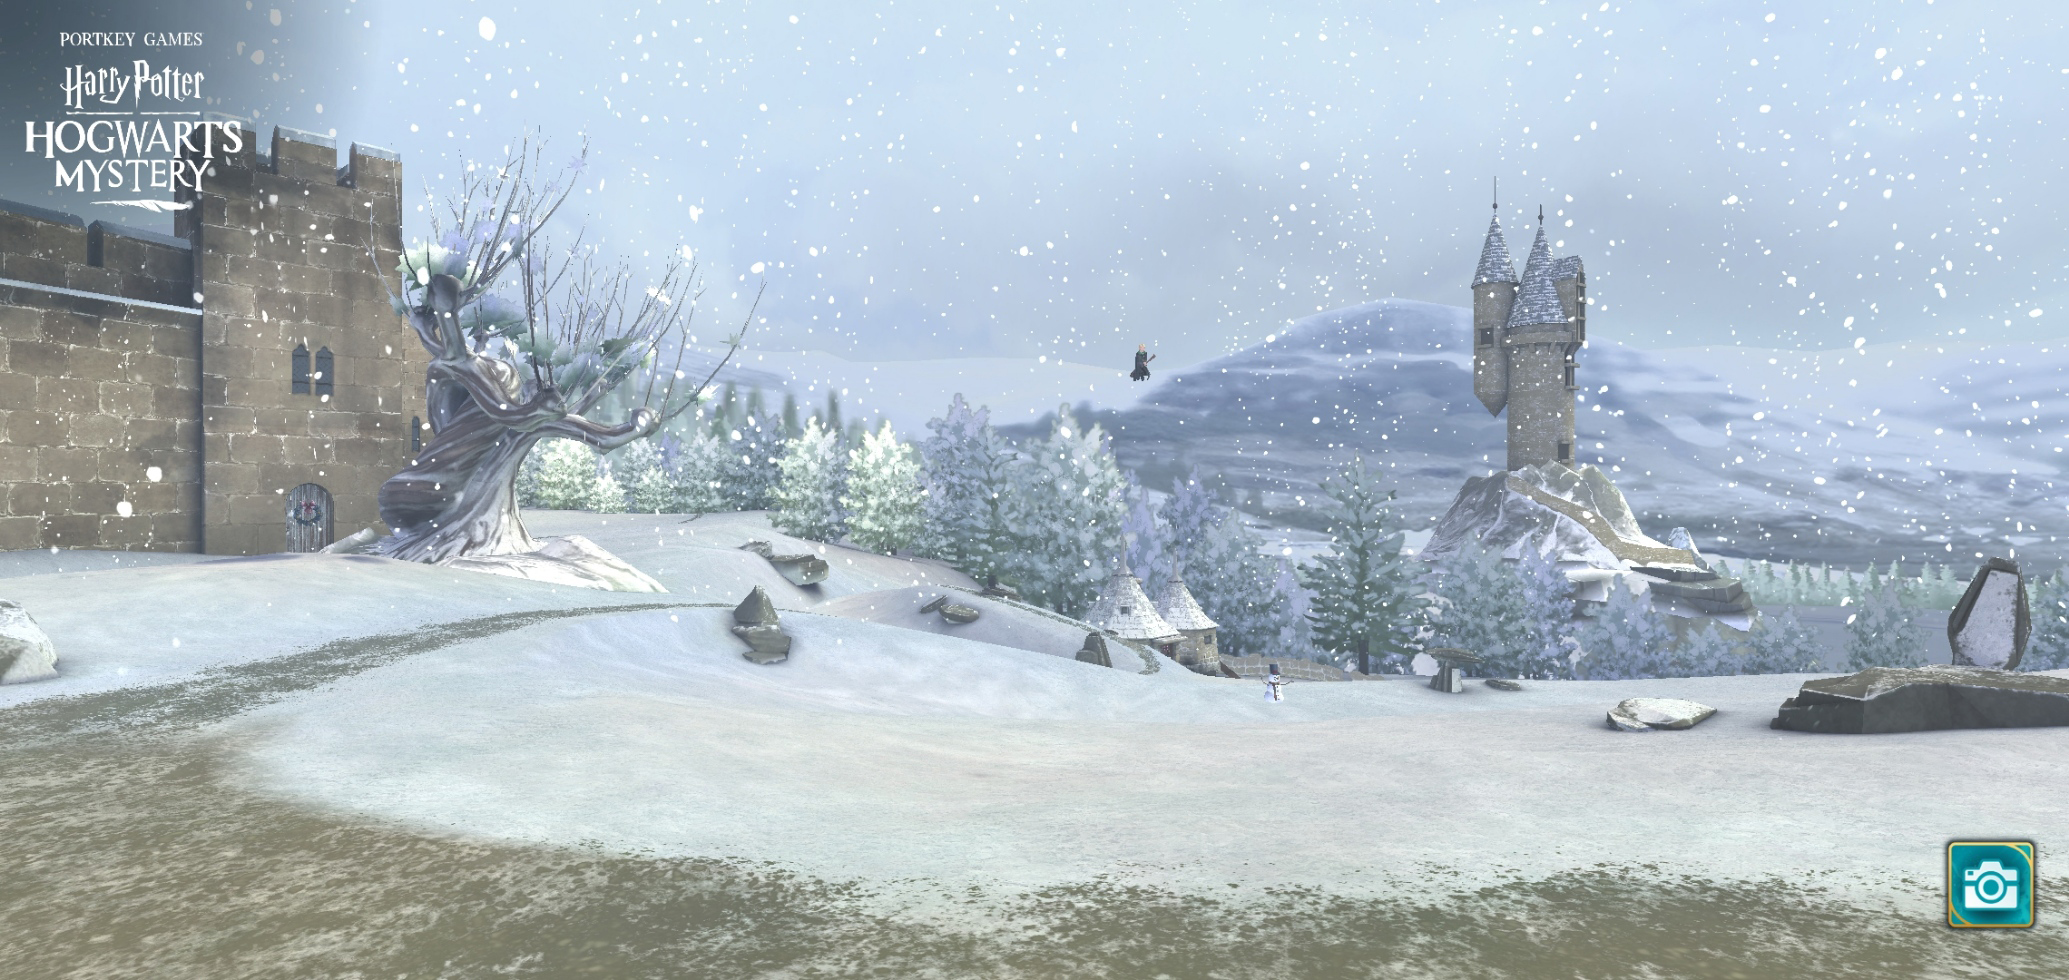 The Whomping Willow looks unassuming and less deadly than usual in this snowy scene on the Castle Grounds.